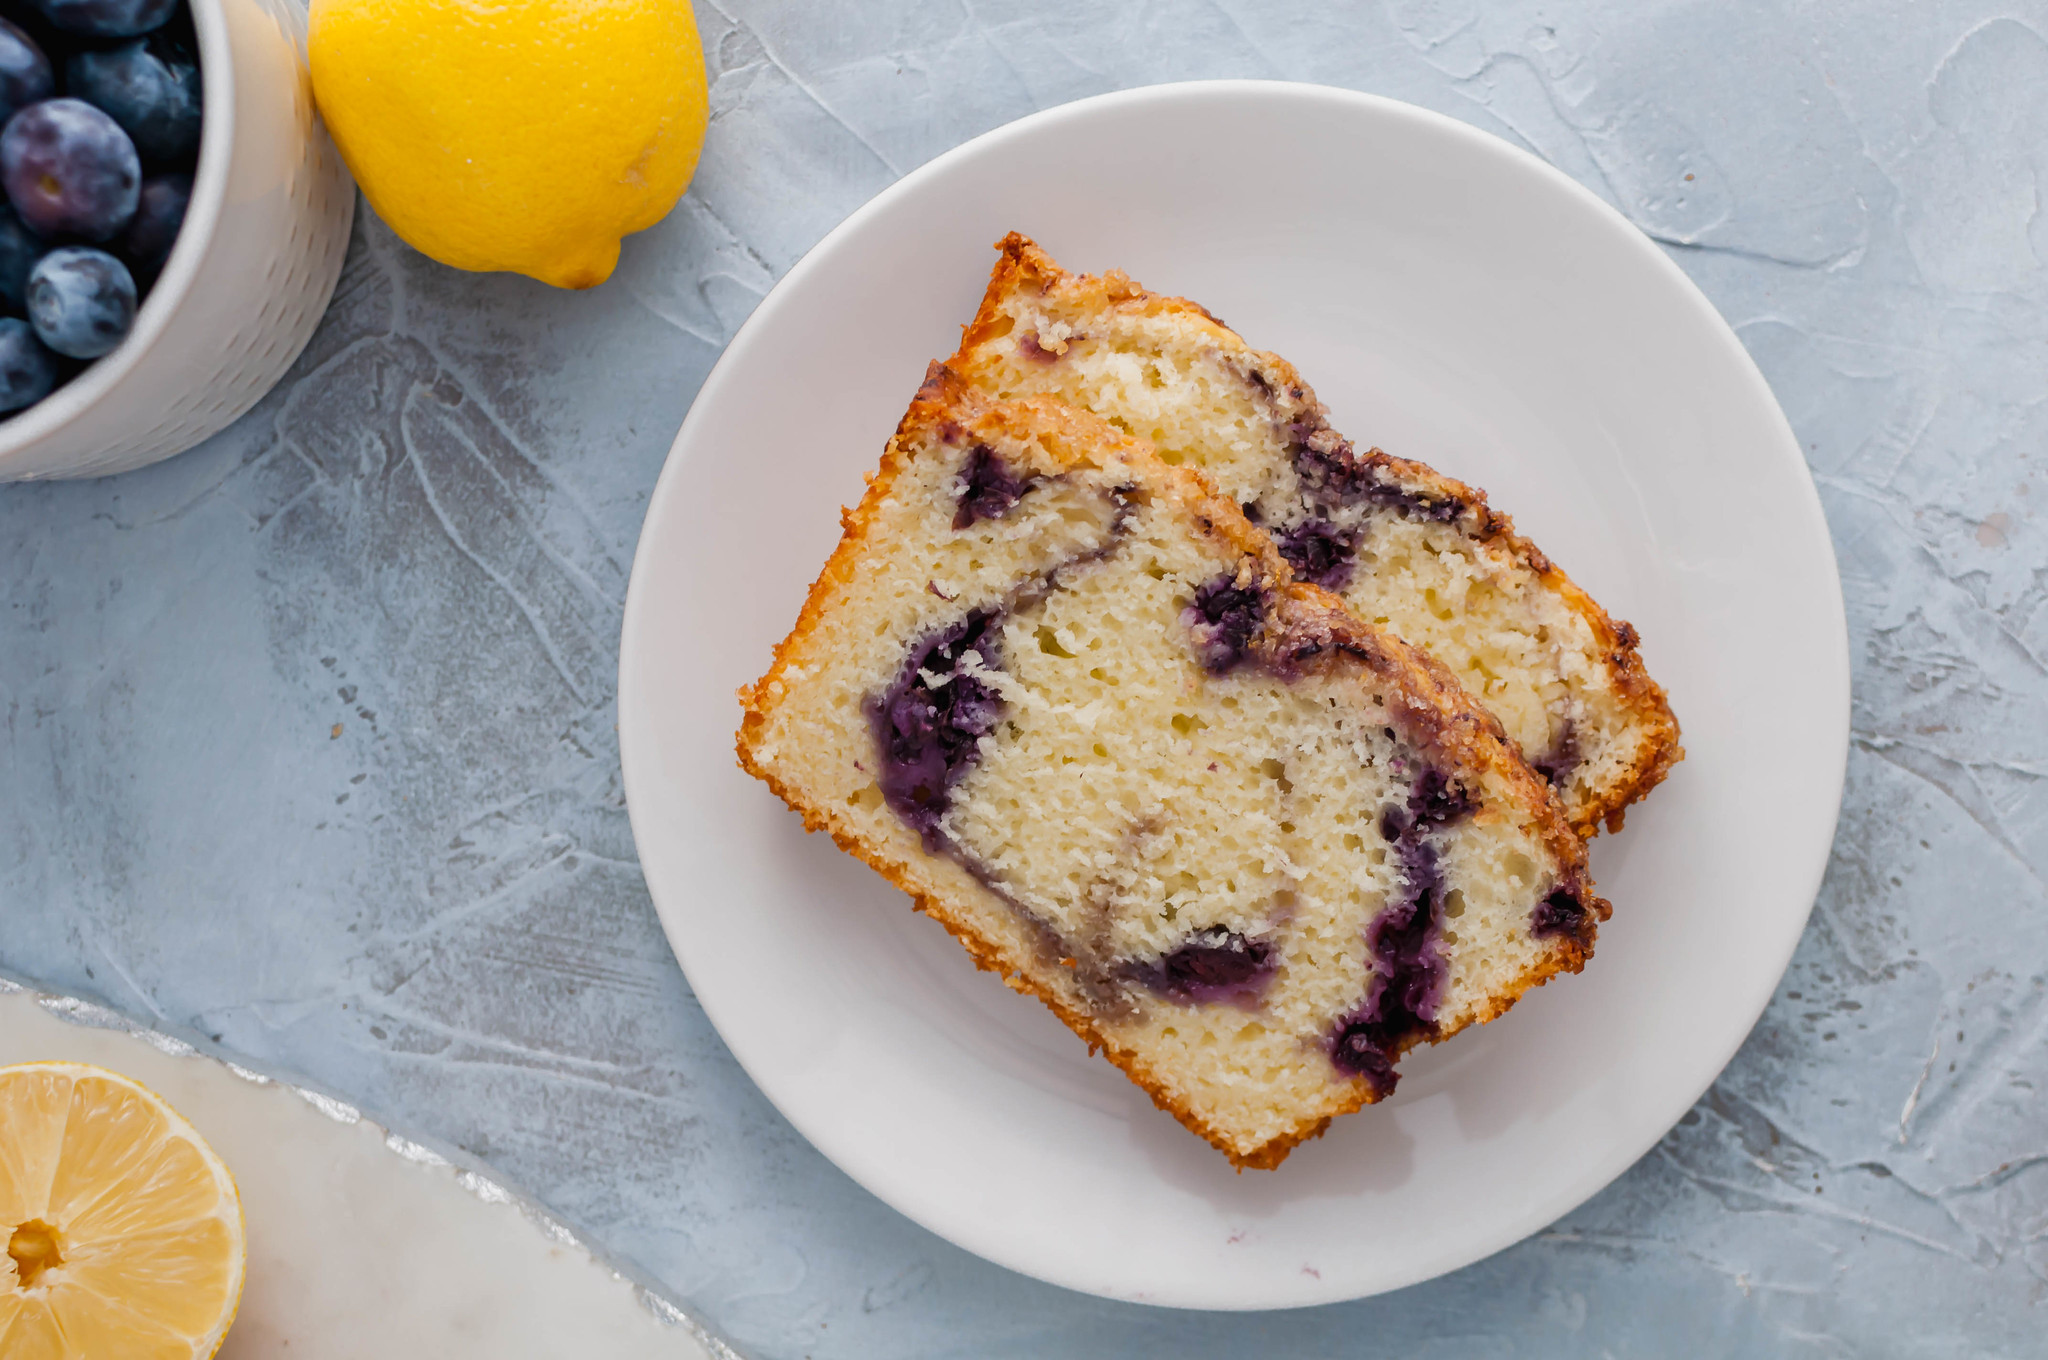 Blueberry Bread is a delicious breakfast option. Tender, moist quick bread swirled with homemade blueberry compote and topped with lemon sugar